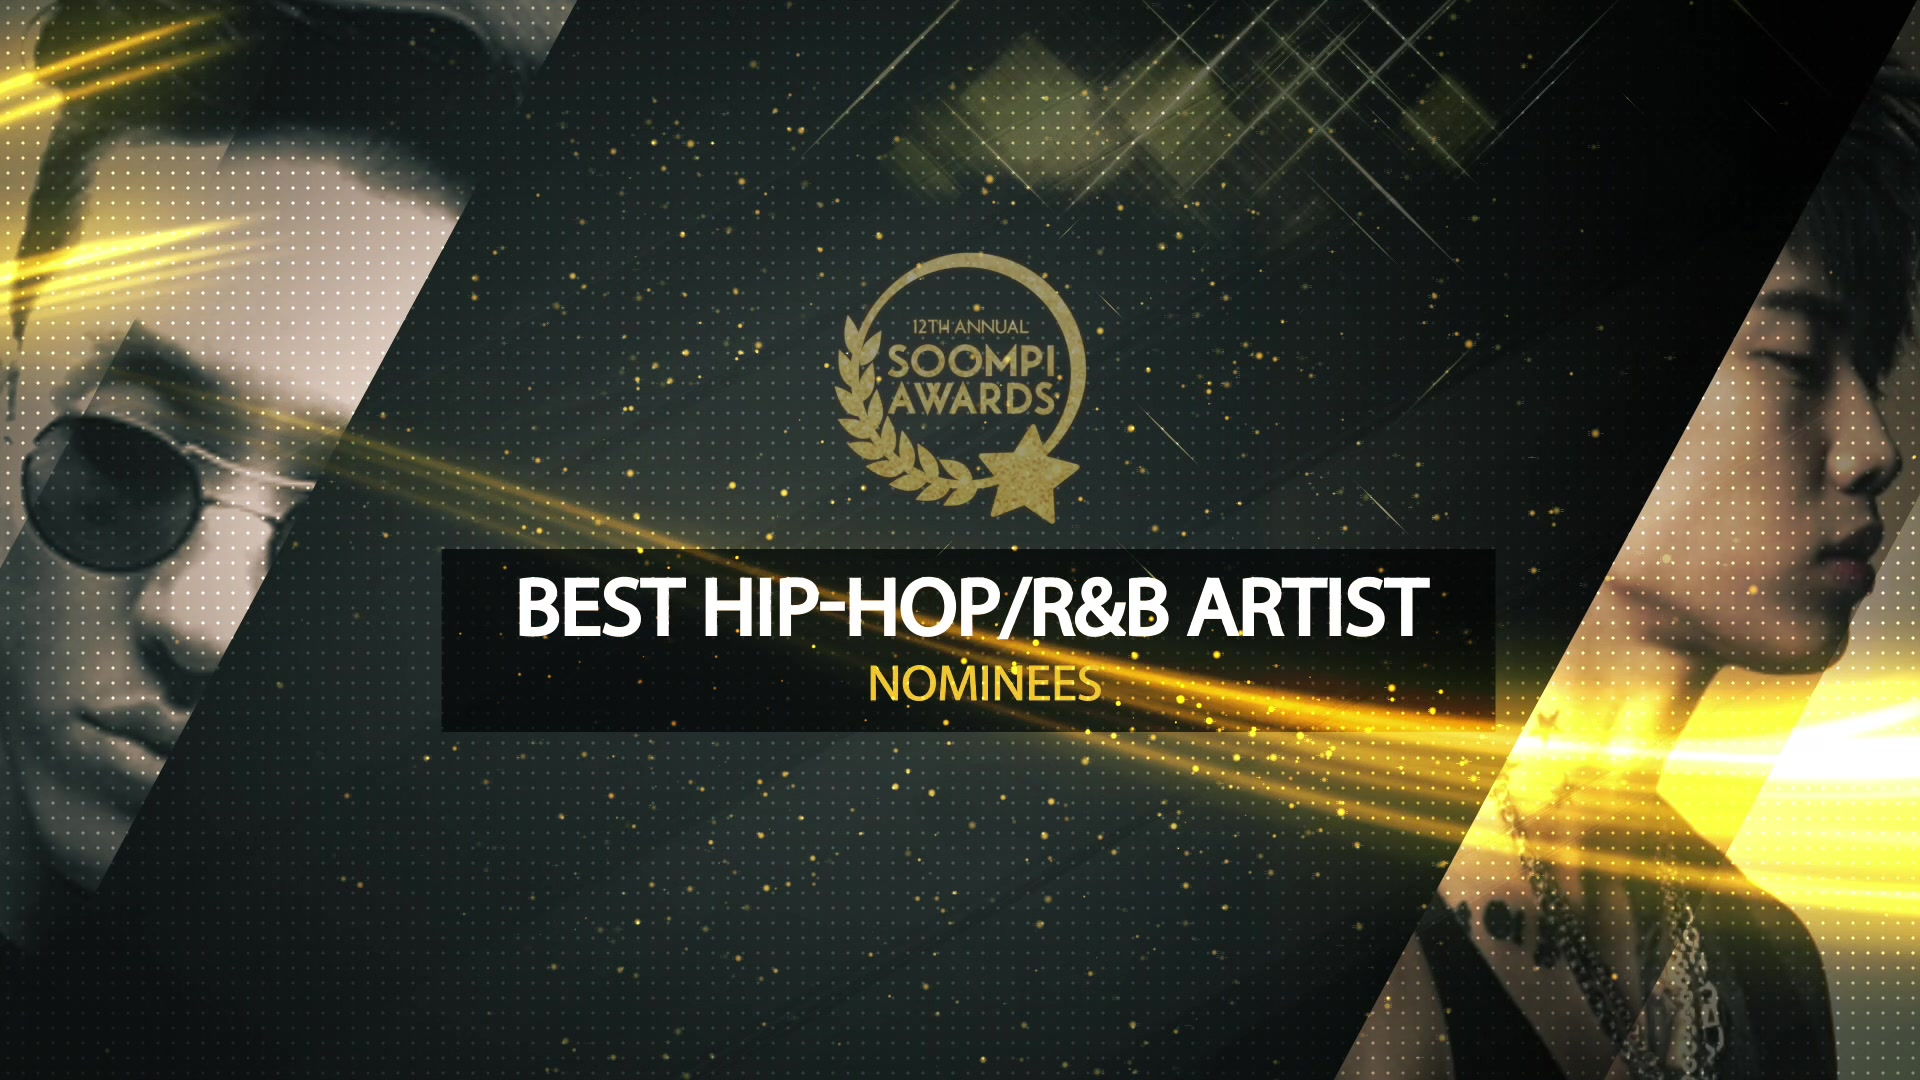 Soompi Awards Episode 1: Best Hip-Hop/R&B Artist